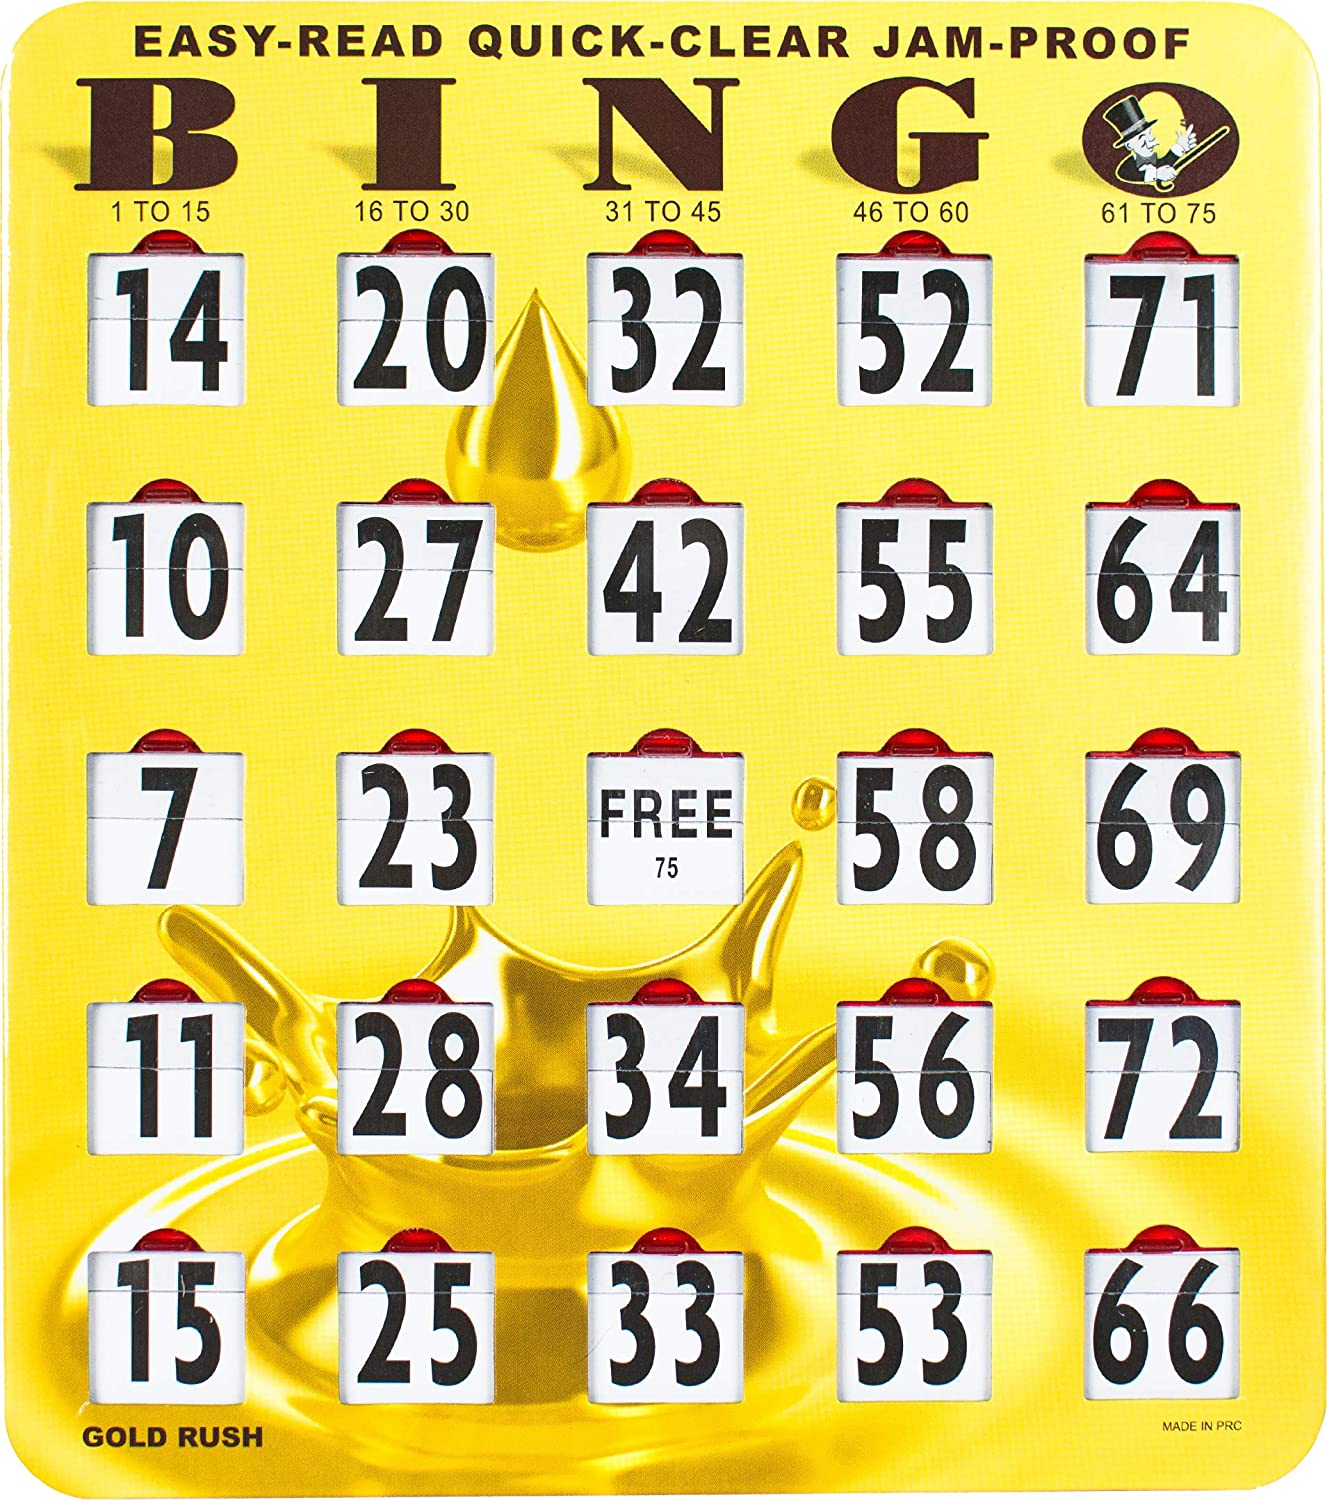 MR Max 54% OFF CHIPS Jam-Proof Quick-Clear Easy-Read Bingo Challenge the lowest price with Cards Large